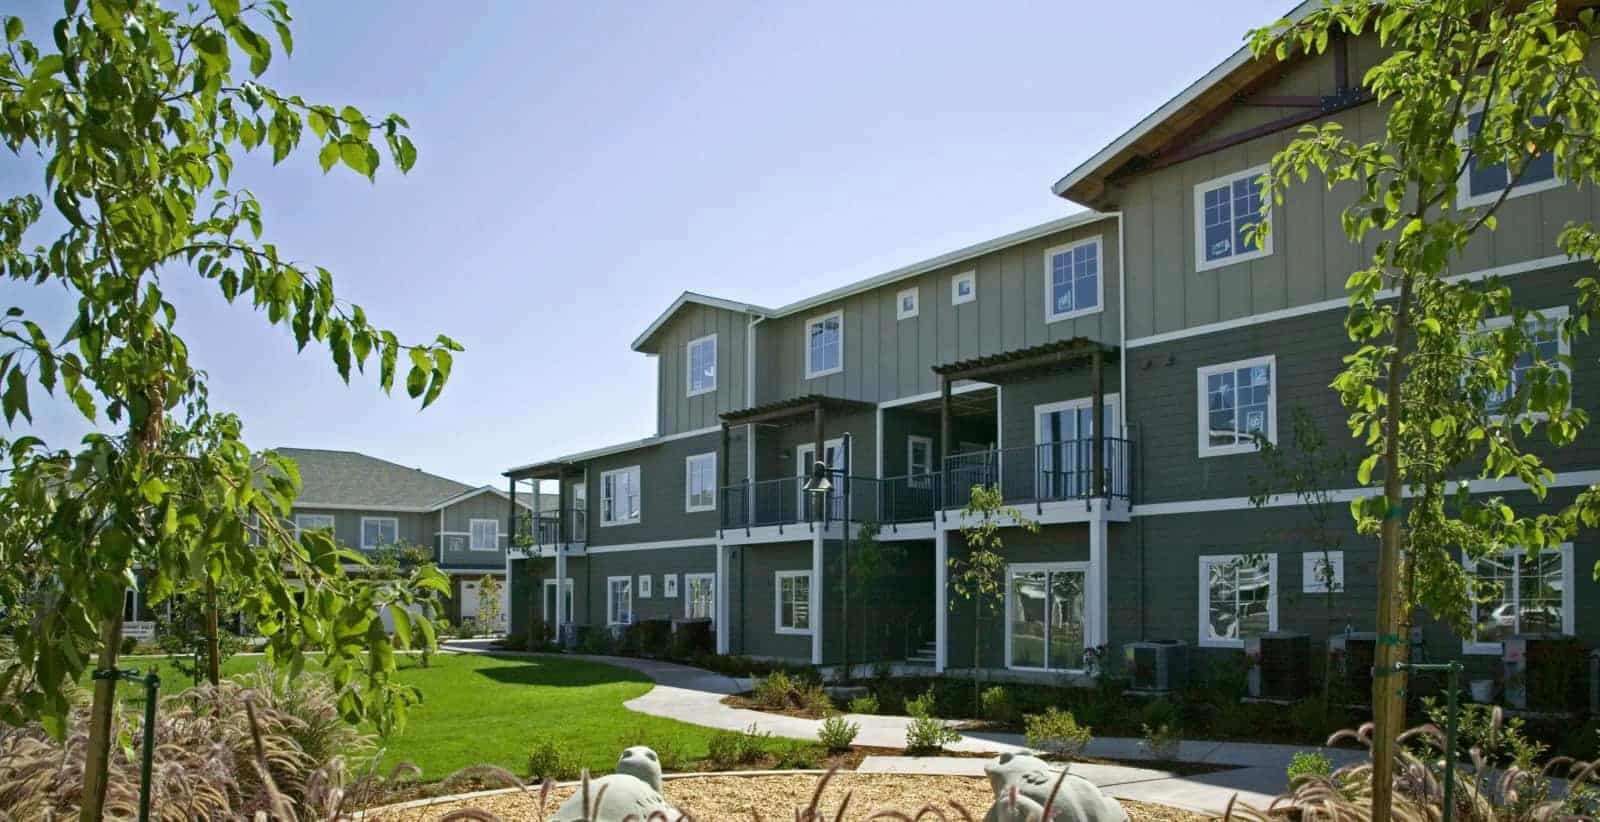 Exterior of 3 story apartment building with a lawn and landscaping in the foreground.